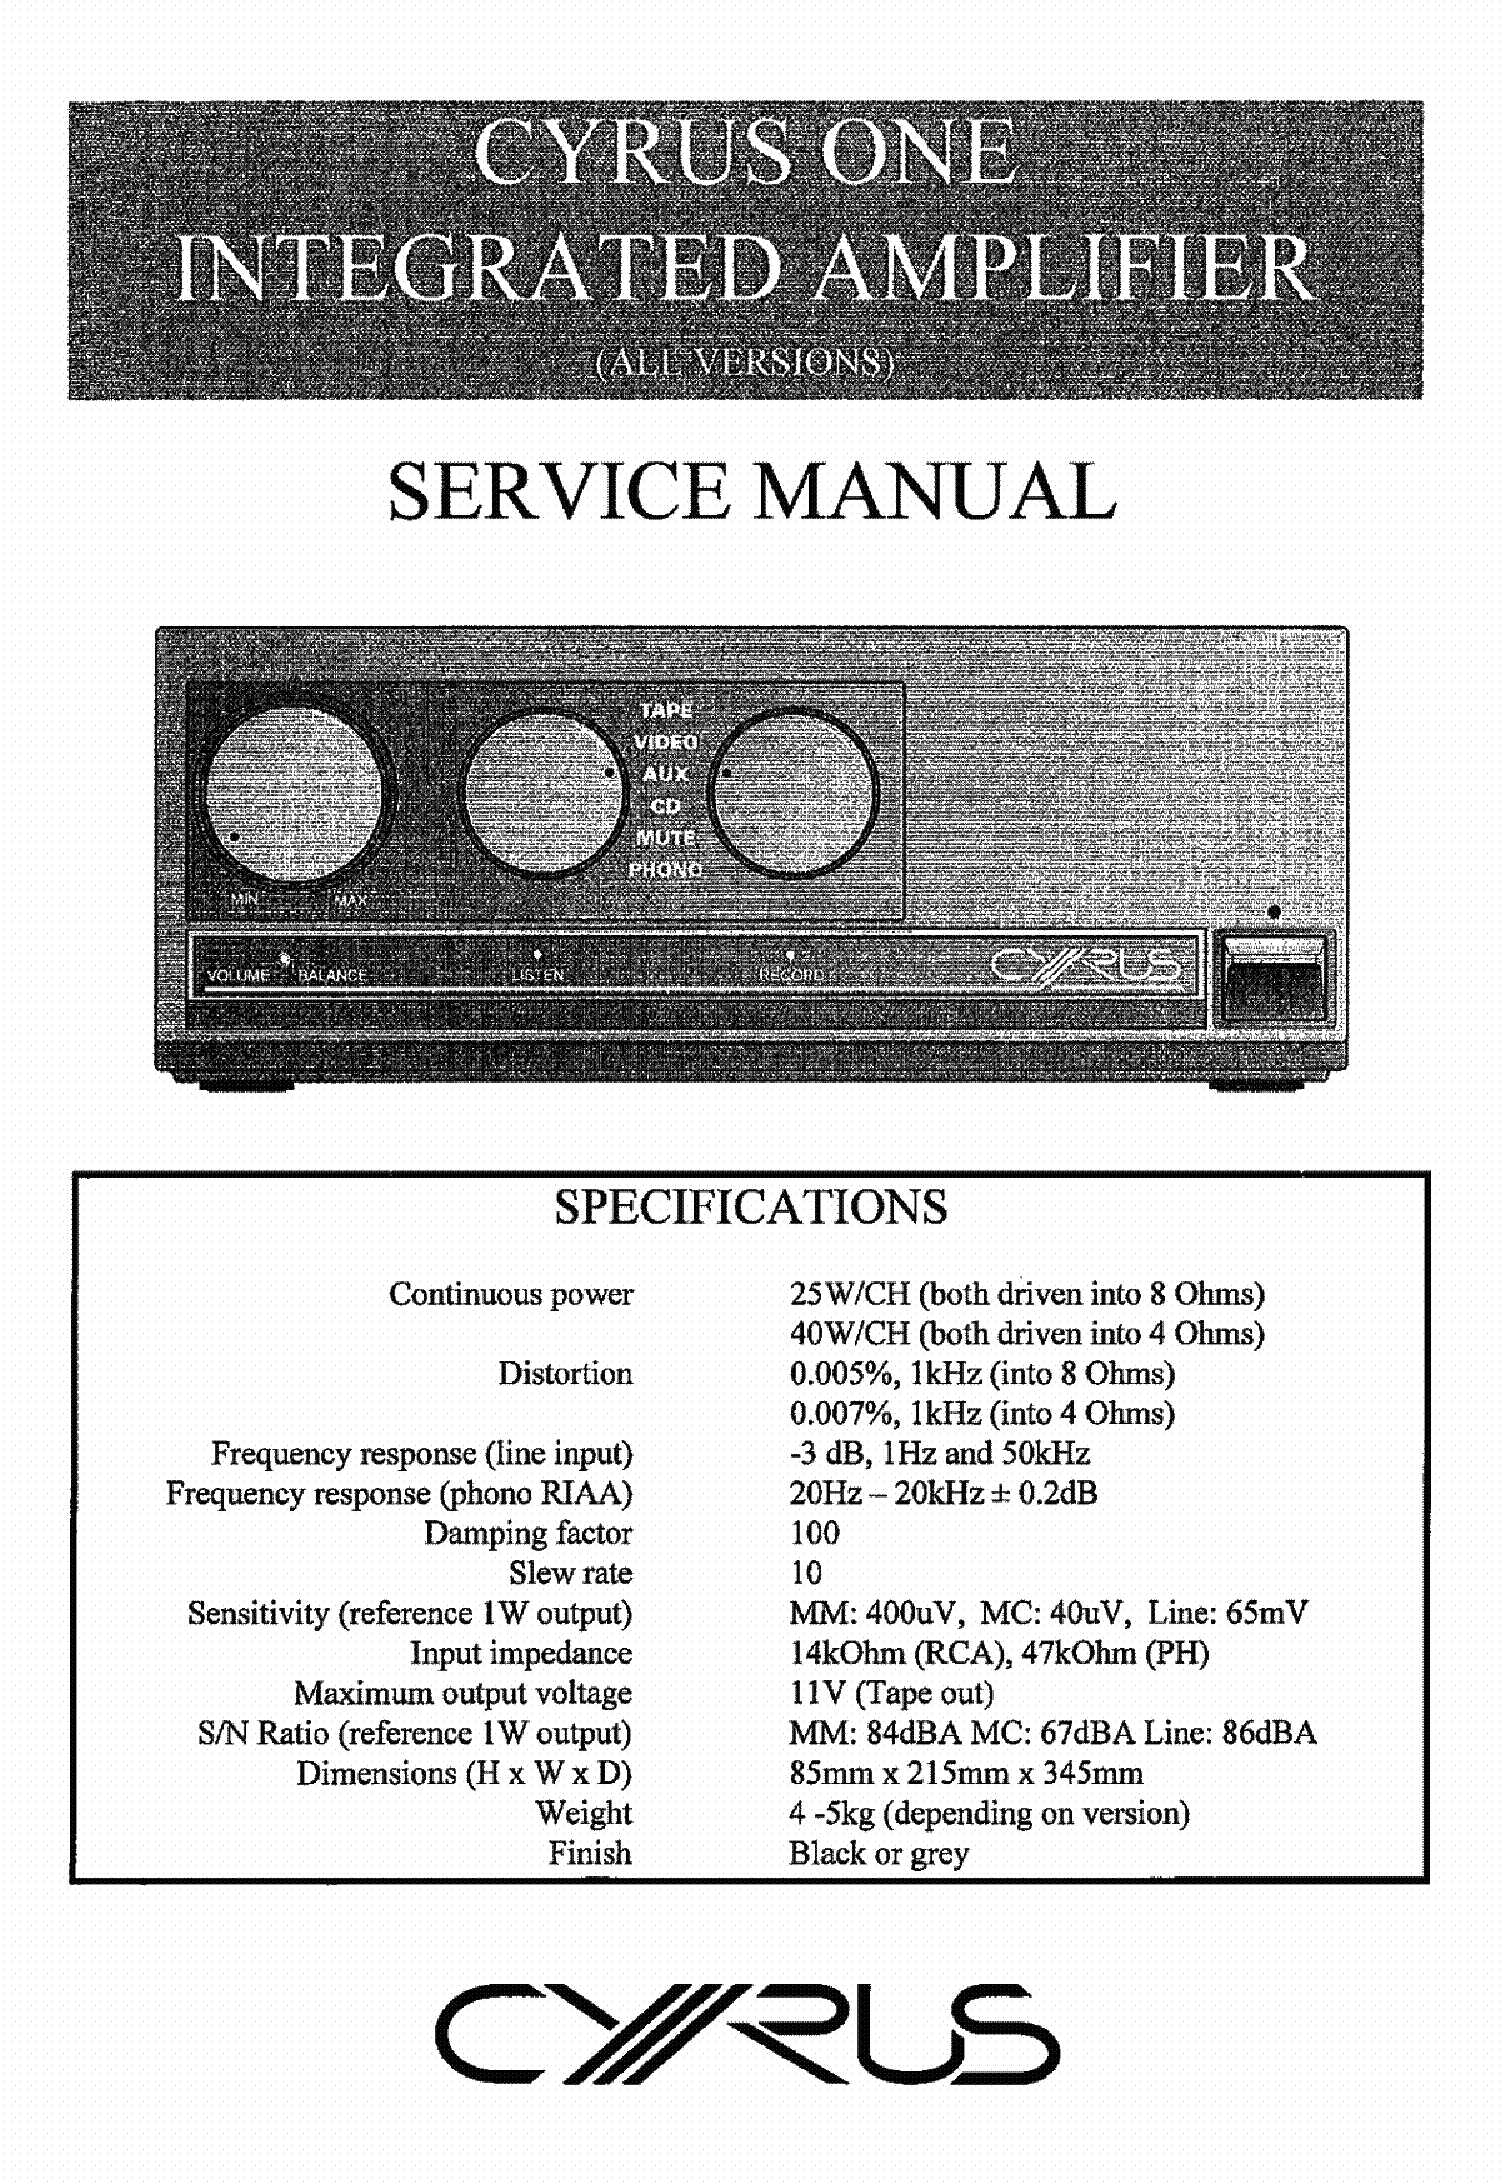 mission cyrus one sm service manual download schematics eeprom rh  elektrotanya com Basic Circuit Diagram Circuit Diagram Examples